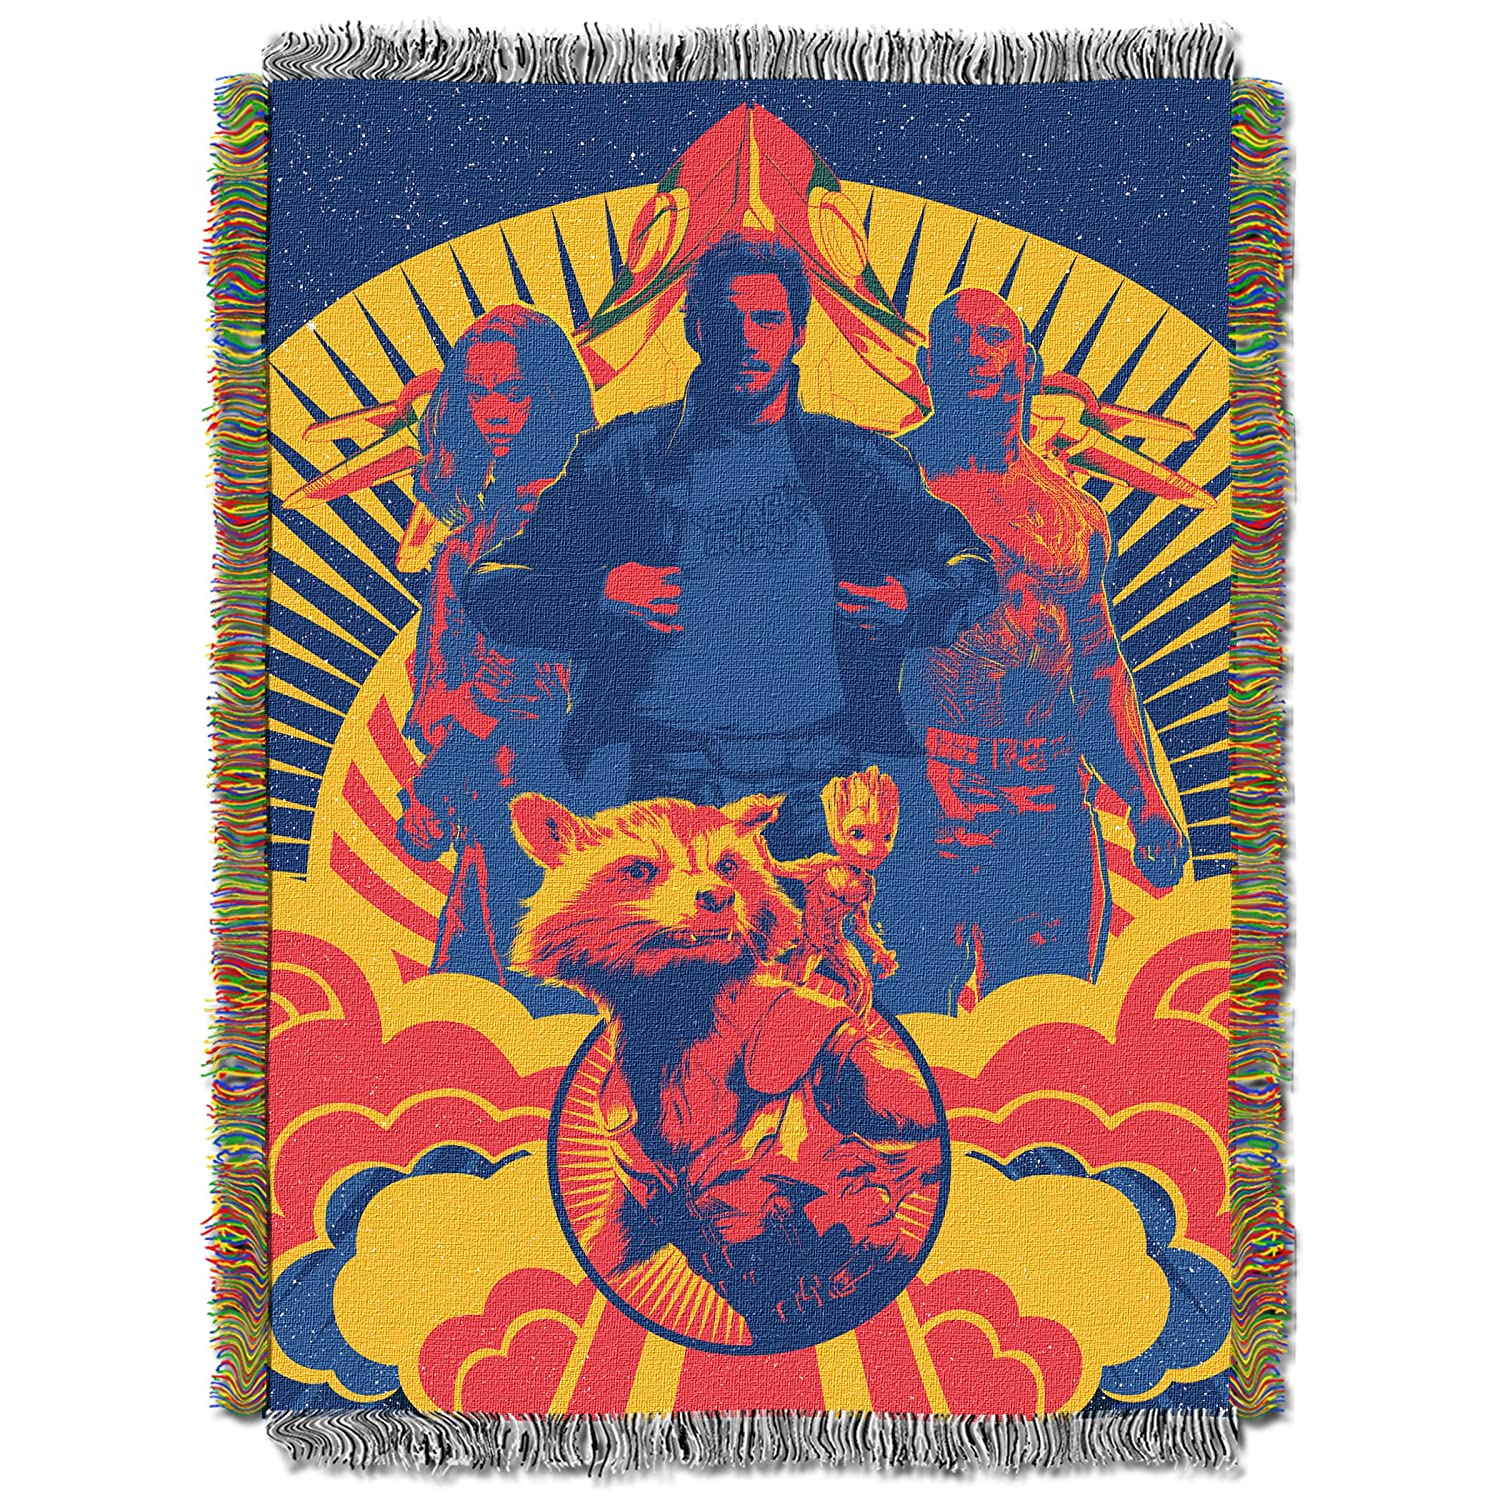 Marvel's Gardians The Galaxy, Pop Guardians Woven Tapestry Throw Blanket, 48 x 60, Multi Color 48 x 60 The Northwest Company 1MAR051000011AMZ